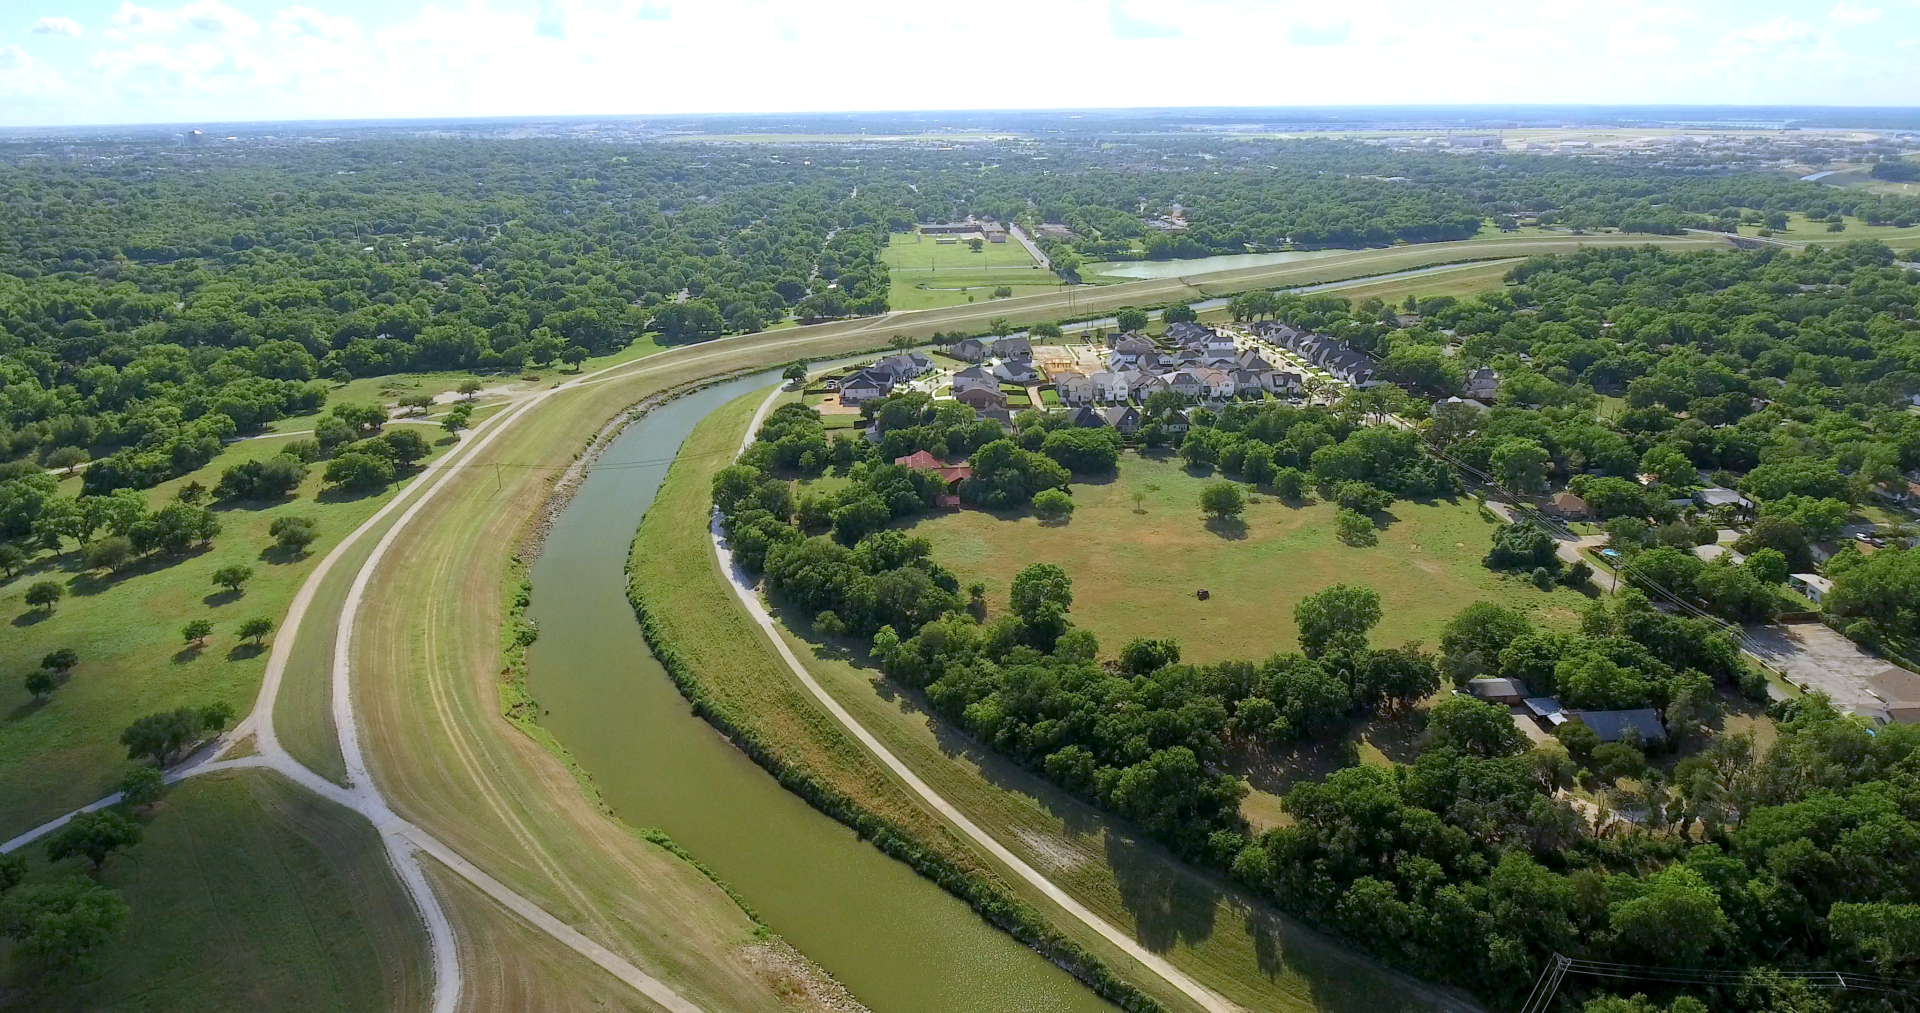 Aerial view of the horseshoe bend of the Trinity River surrounded by numerous green trees and houses in the background